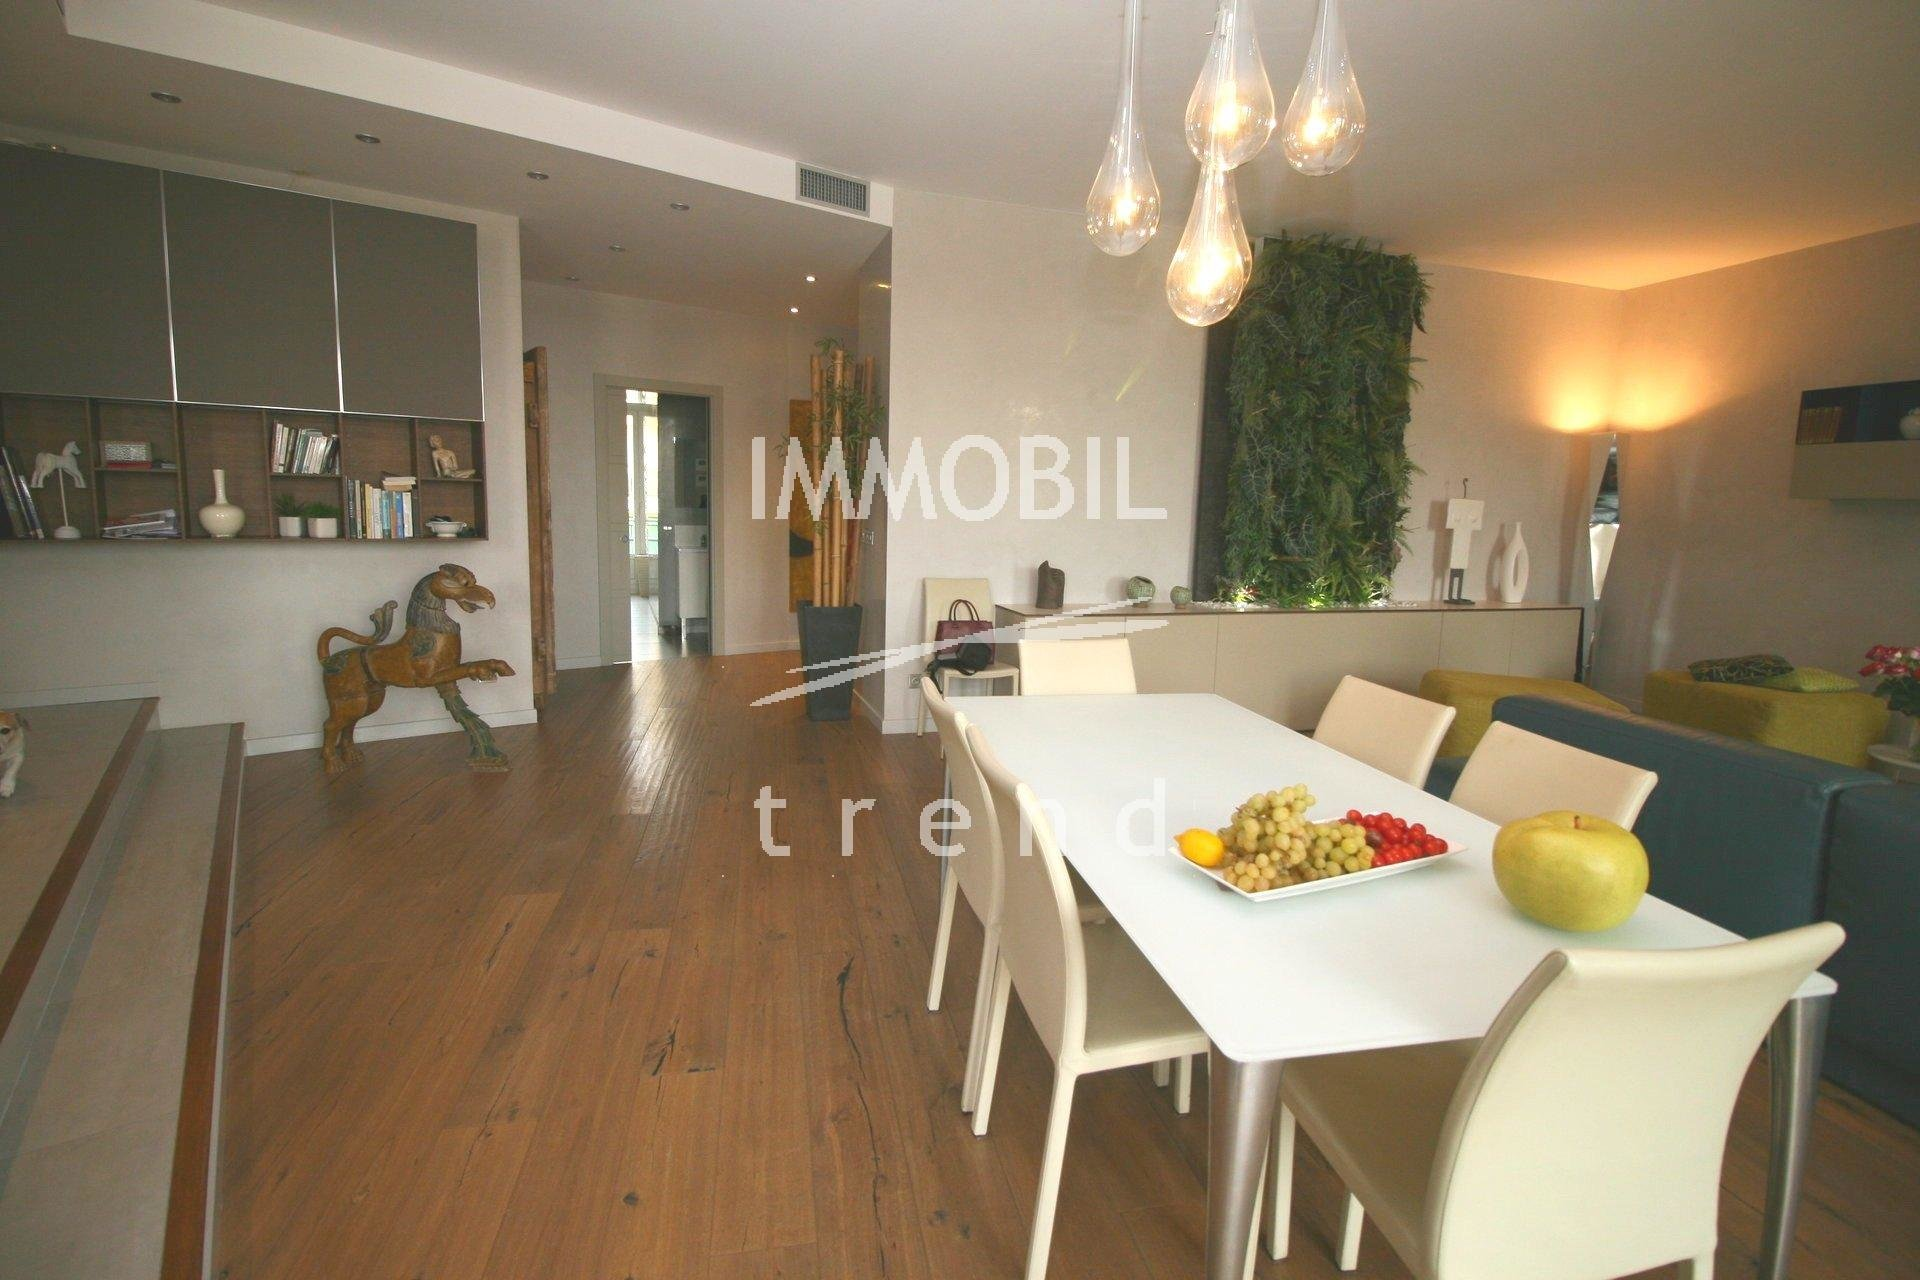 Real estate Menton - For sale, big apartment inside a prestigious building situated in the town centre